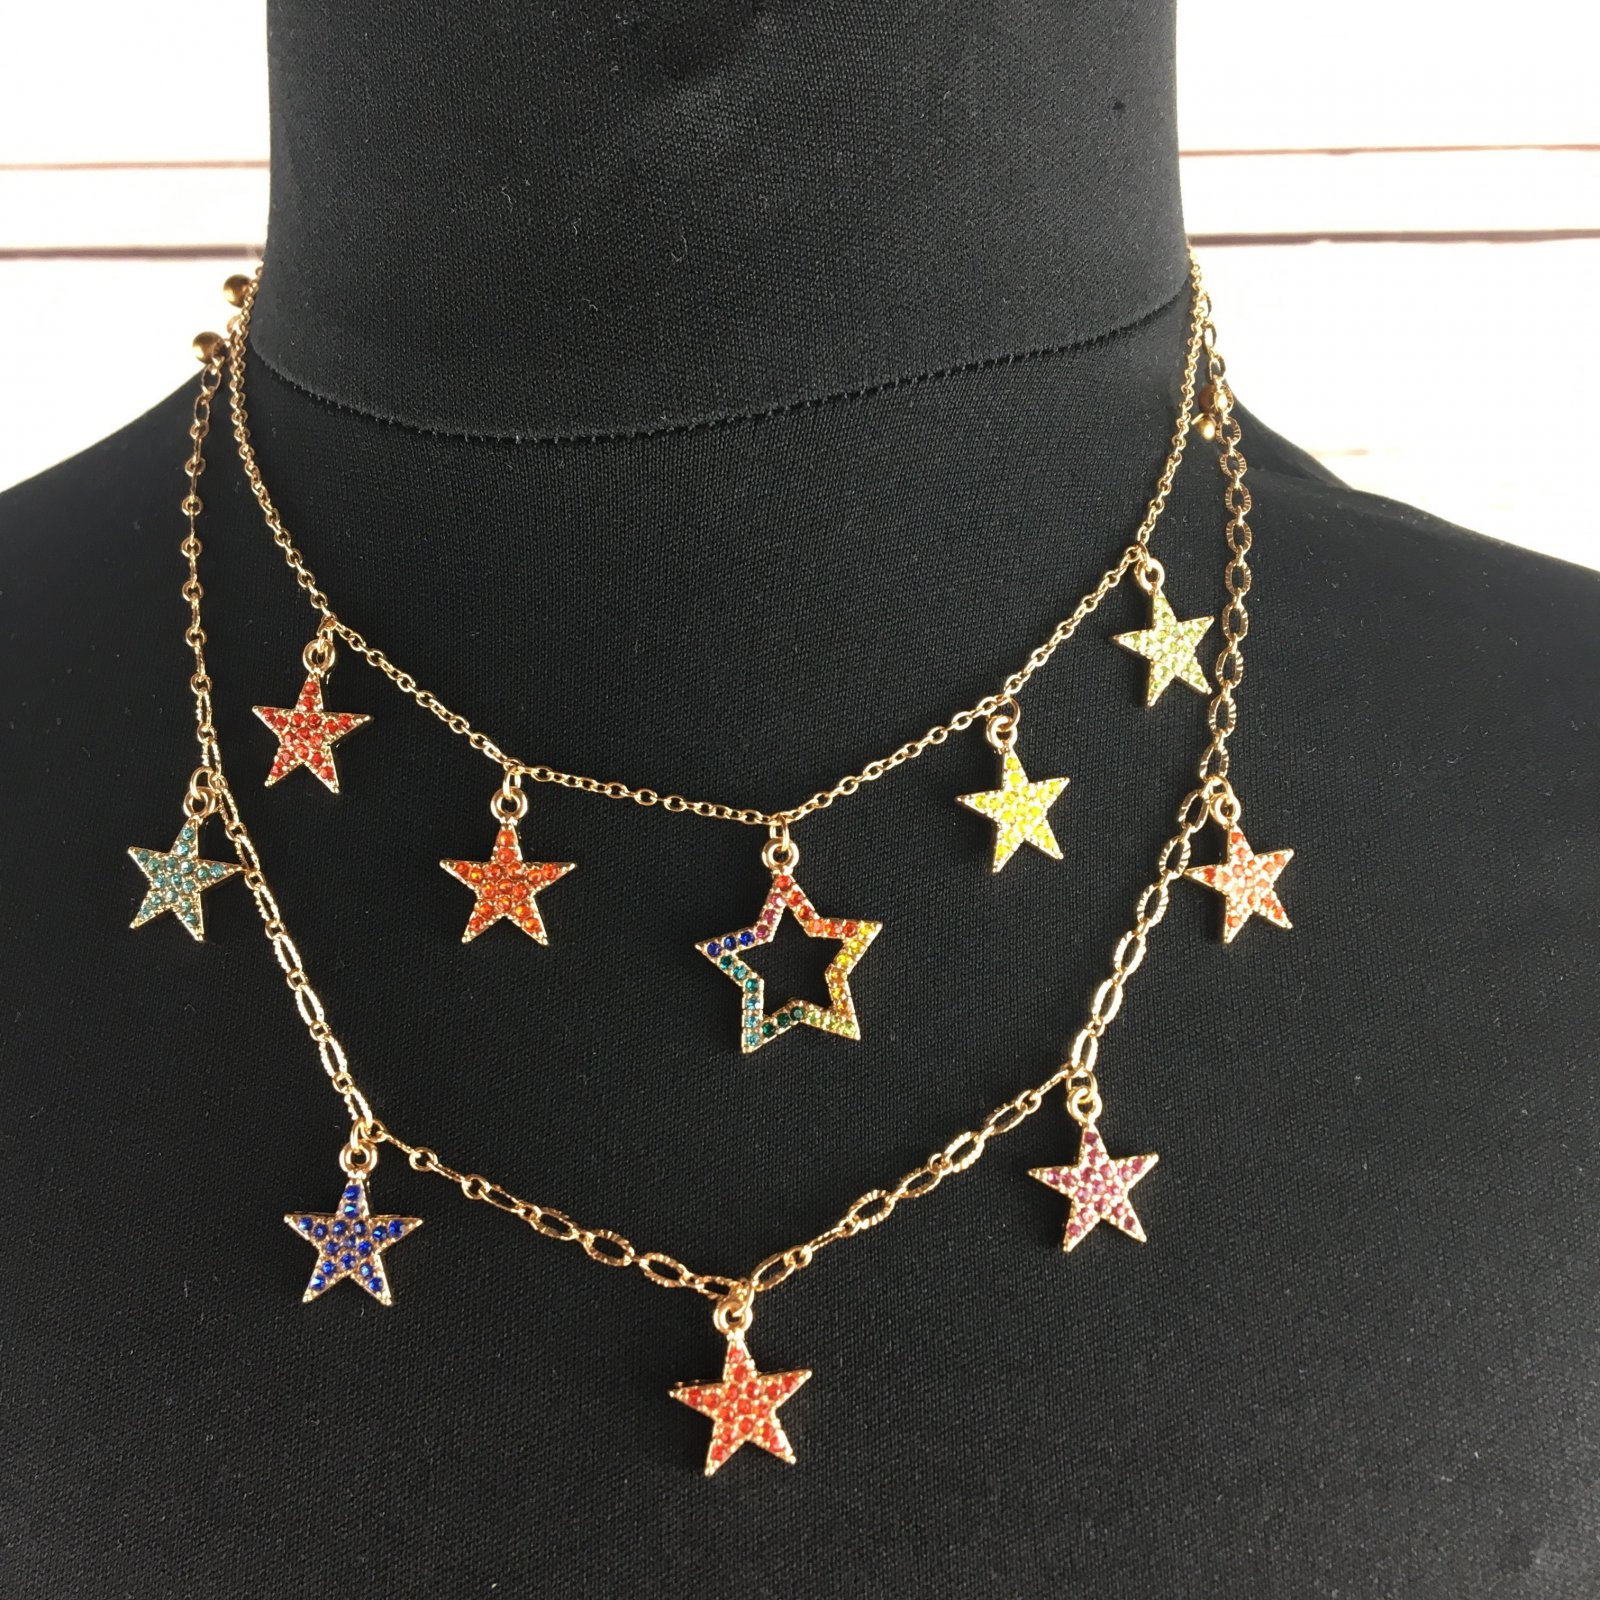 Dancing stars necklace